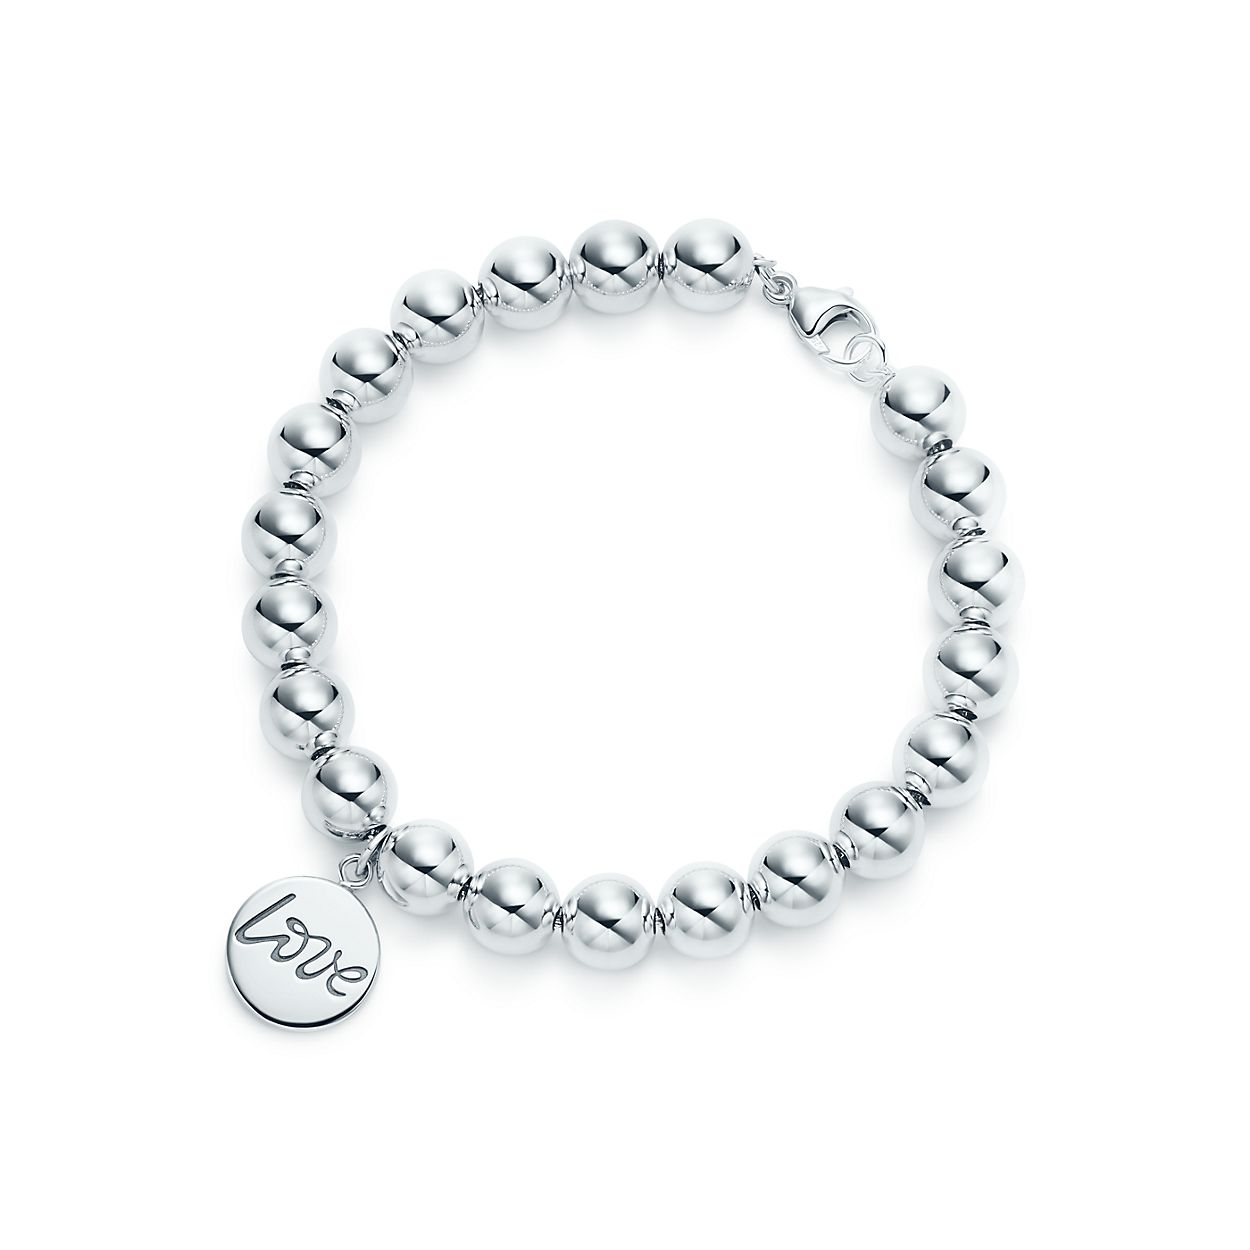 Palomas Graffiti love tag in sterling silver on a bead bracelet, medium Tiffany & Co.